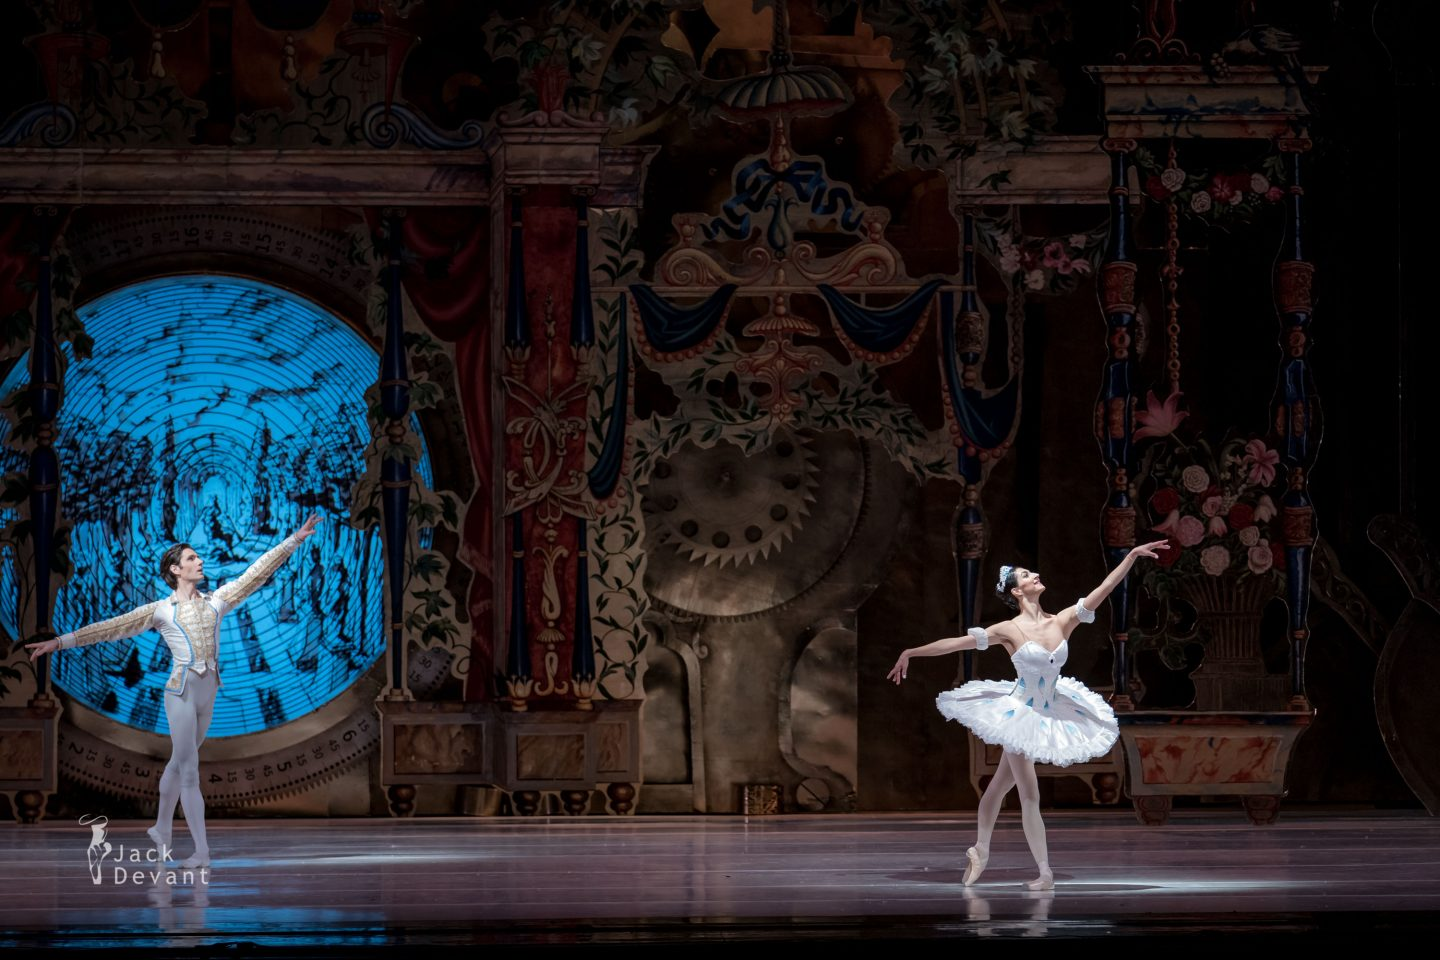 Chinara Alizade and Vladimir Yaroshenko in The Nutcracker PDD